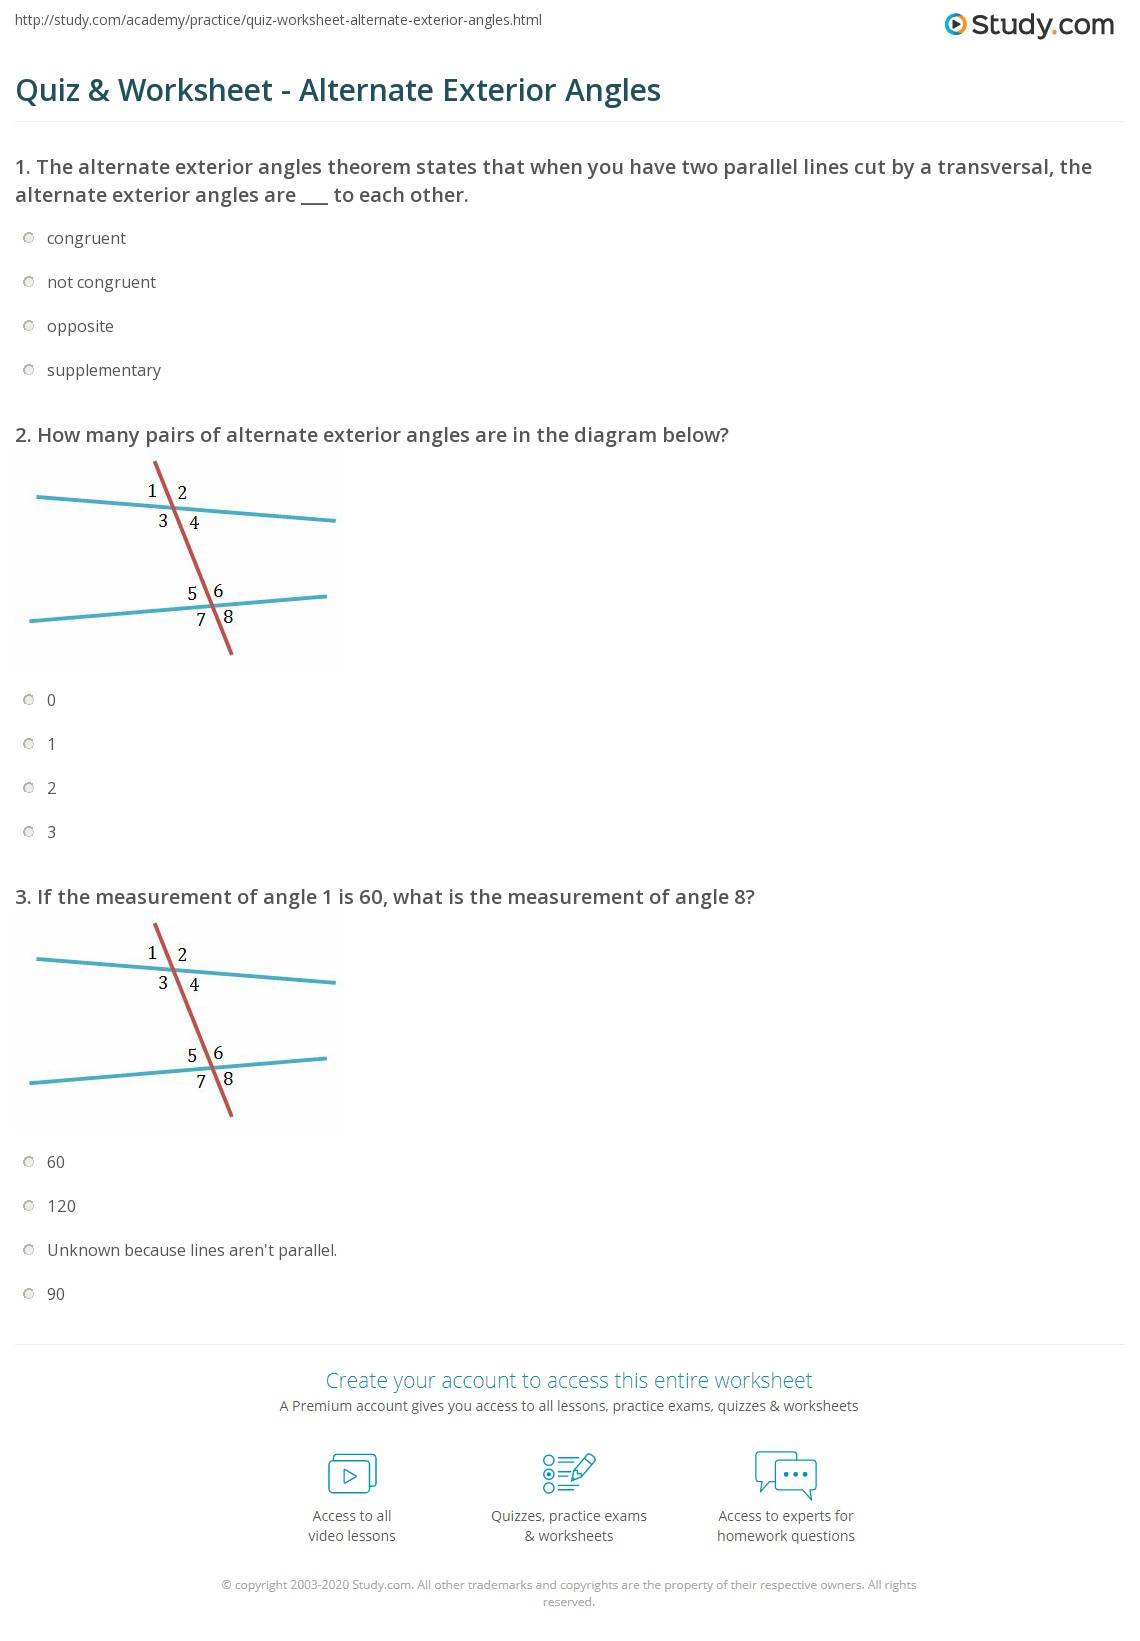 Exterior Angle Theorem Worksheet Polygons Angles Worksheet Interior moreover Angles Practice Worksheets Interior and Exterior Angles moreover  further  also  furthermore Exterior Angles On The Same Side Of The Transversal Exterior Angles additionally Interior and Exterior Angles Worksheet   Semesprit Worksheet moreover Triangle Interior Angle Worksheet Math Math Triangles Unit Interior together with Quiz   Worksheet   Alternate Exterior Angles   Study together with Interior and Exterior Angles of Polygons by clairelogan100 furthermore  as well Angles Formed by a Transversal Worksheets furthermore Geometry Worksheets   Angles Worksheets for Practice and Study further Printable math worksheets exterior angles   Download them or print additionally Interior and Exterior Angles Worksheet   Briefencounters Worksheet furthermore Interior And Exterior Angles Worksheet   Lobo Black. on interior and exterior angles worksheet